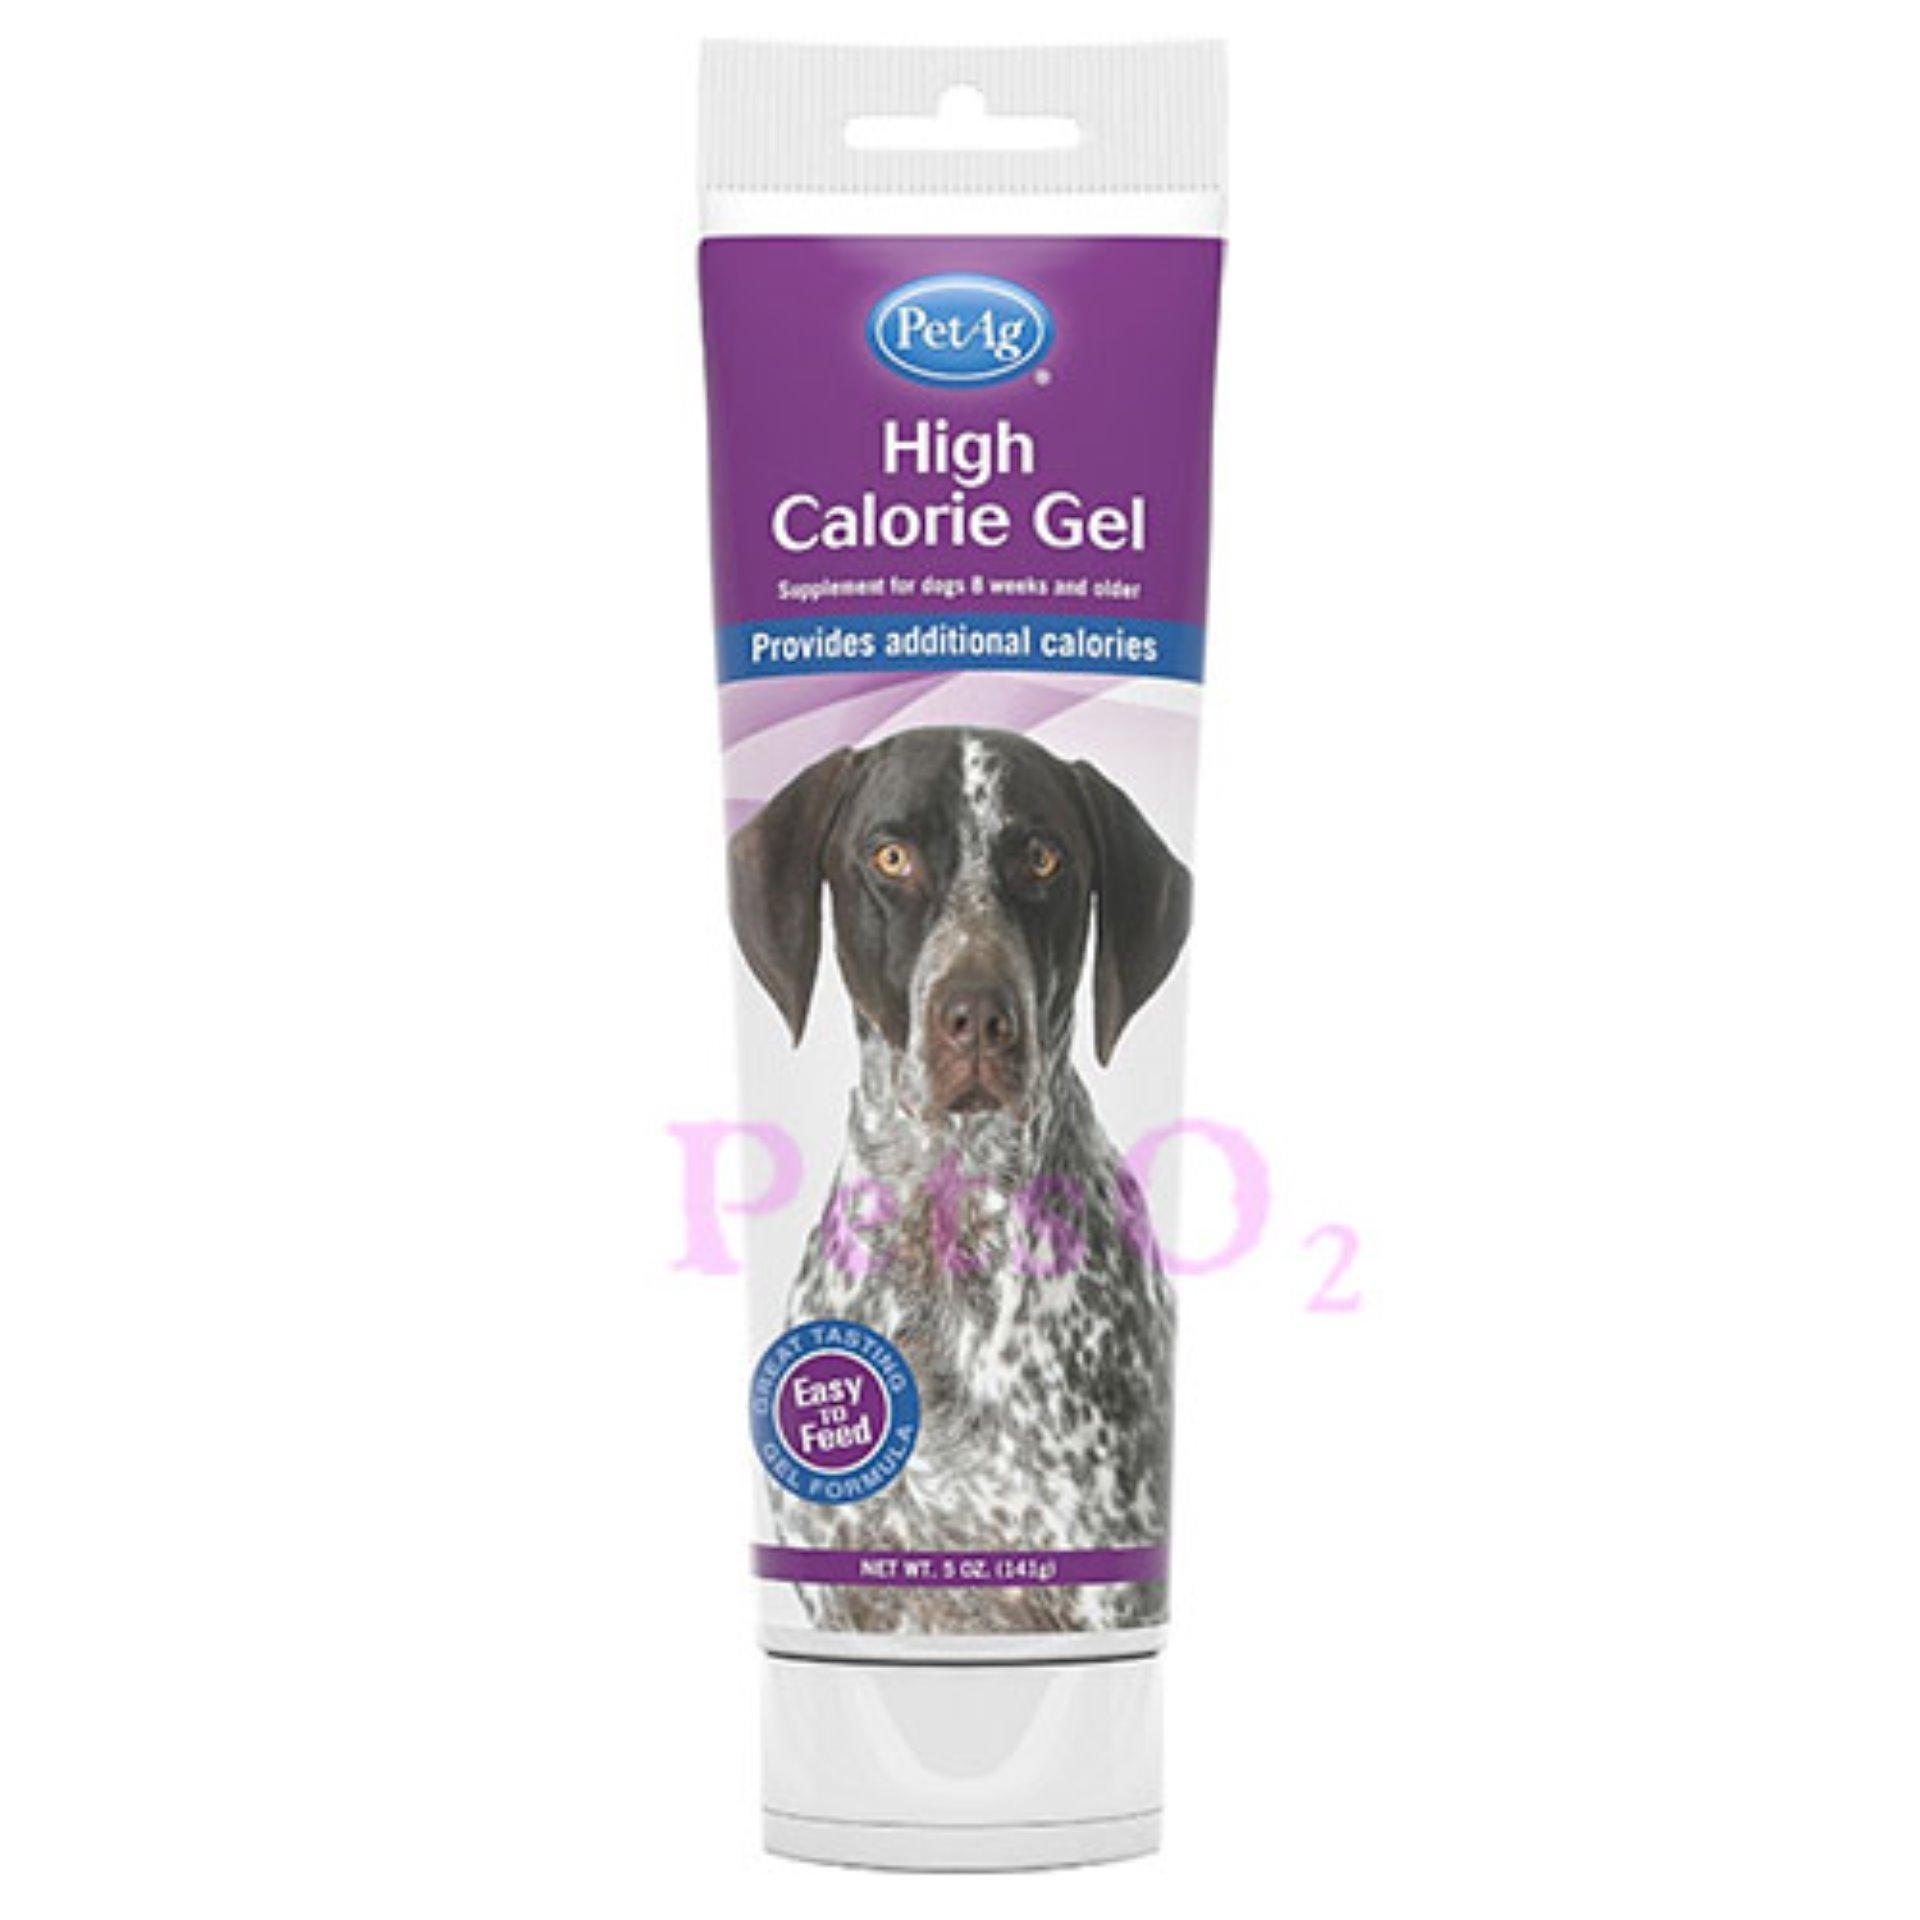 Petag Dog High Calorie Gel 141g By Petso2.